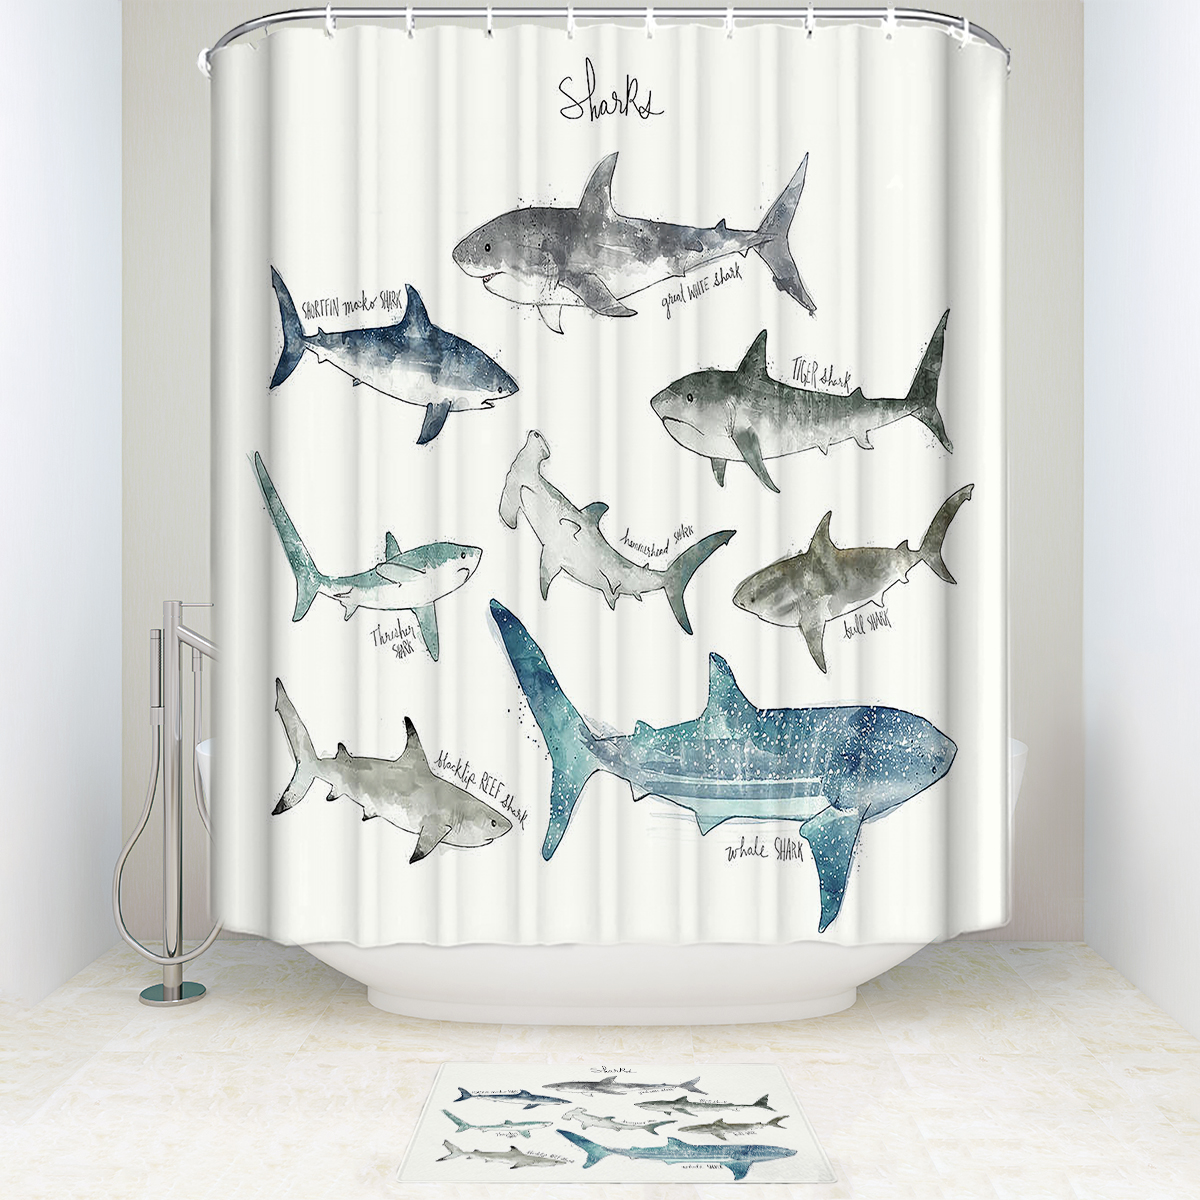 Us 14 89 25 Off Sea Fish Shower Curtain And Mat Set For Children S Room Funny Waterproof Fabric Bathroom Shower Curtain For Home Decoration In